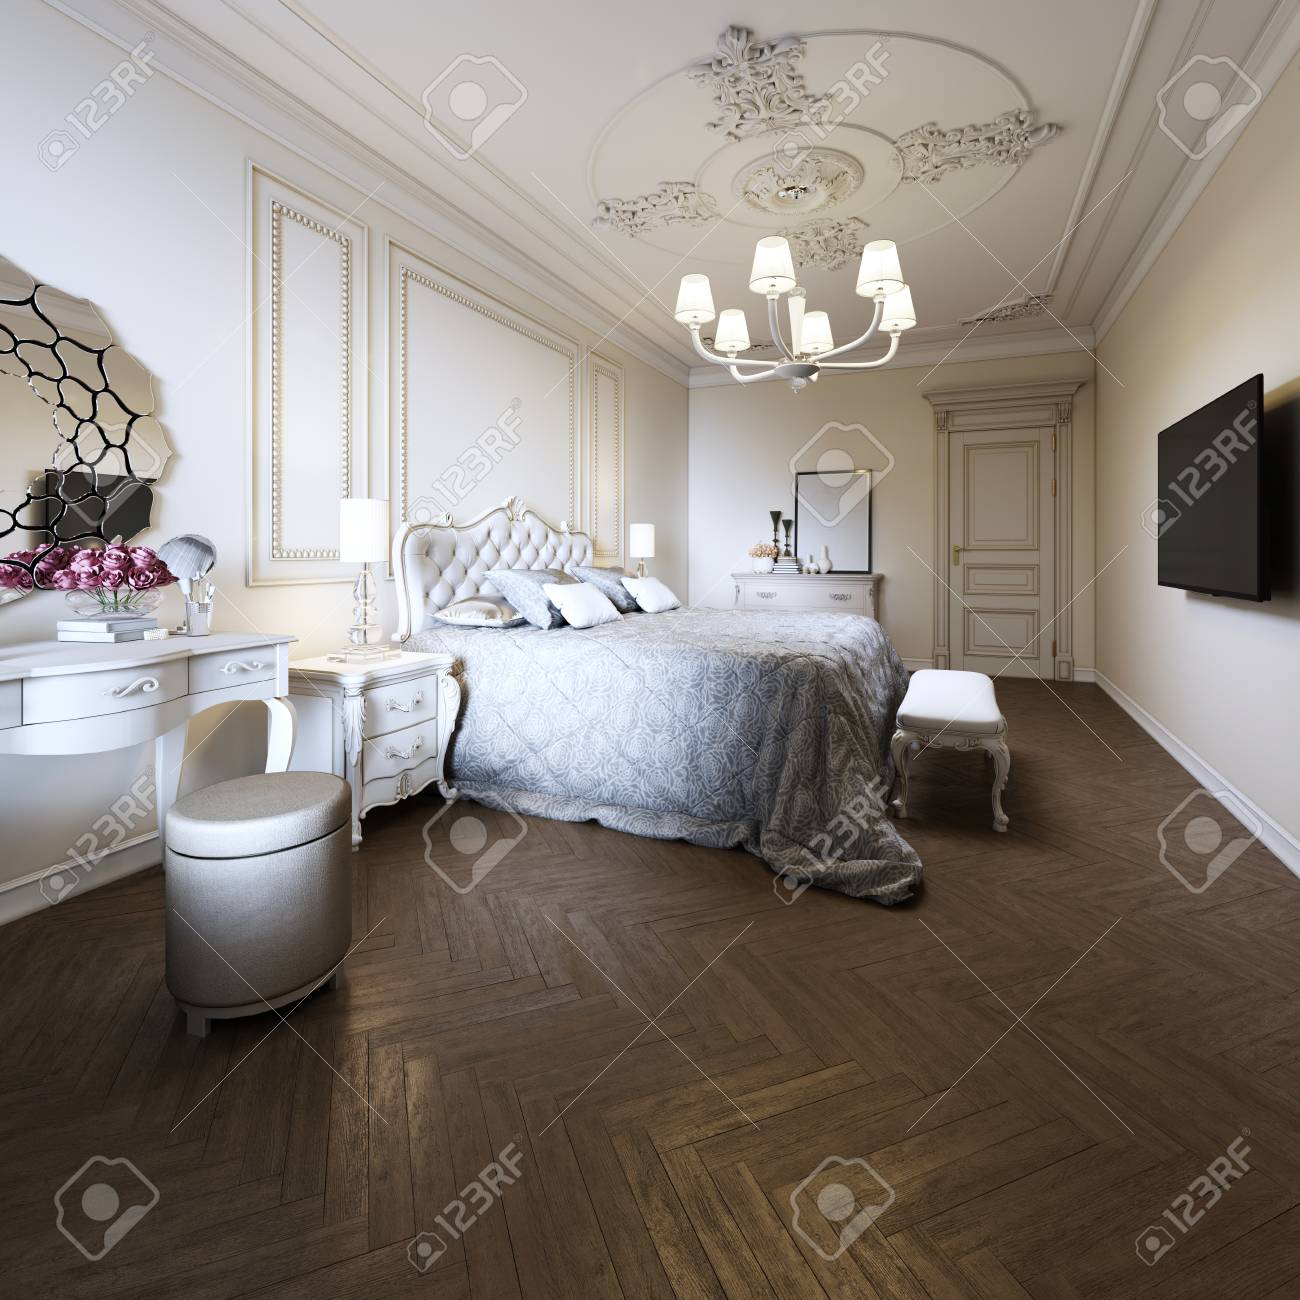 Bedroom Interior Design In A Modern Classic Style 3d Rendering Stock Photo Picture And Royalty Free Image Image 113380340